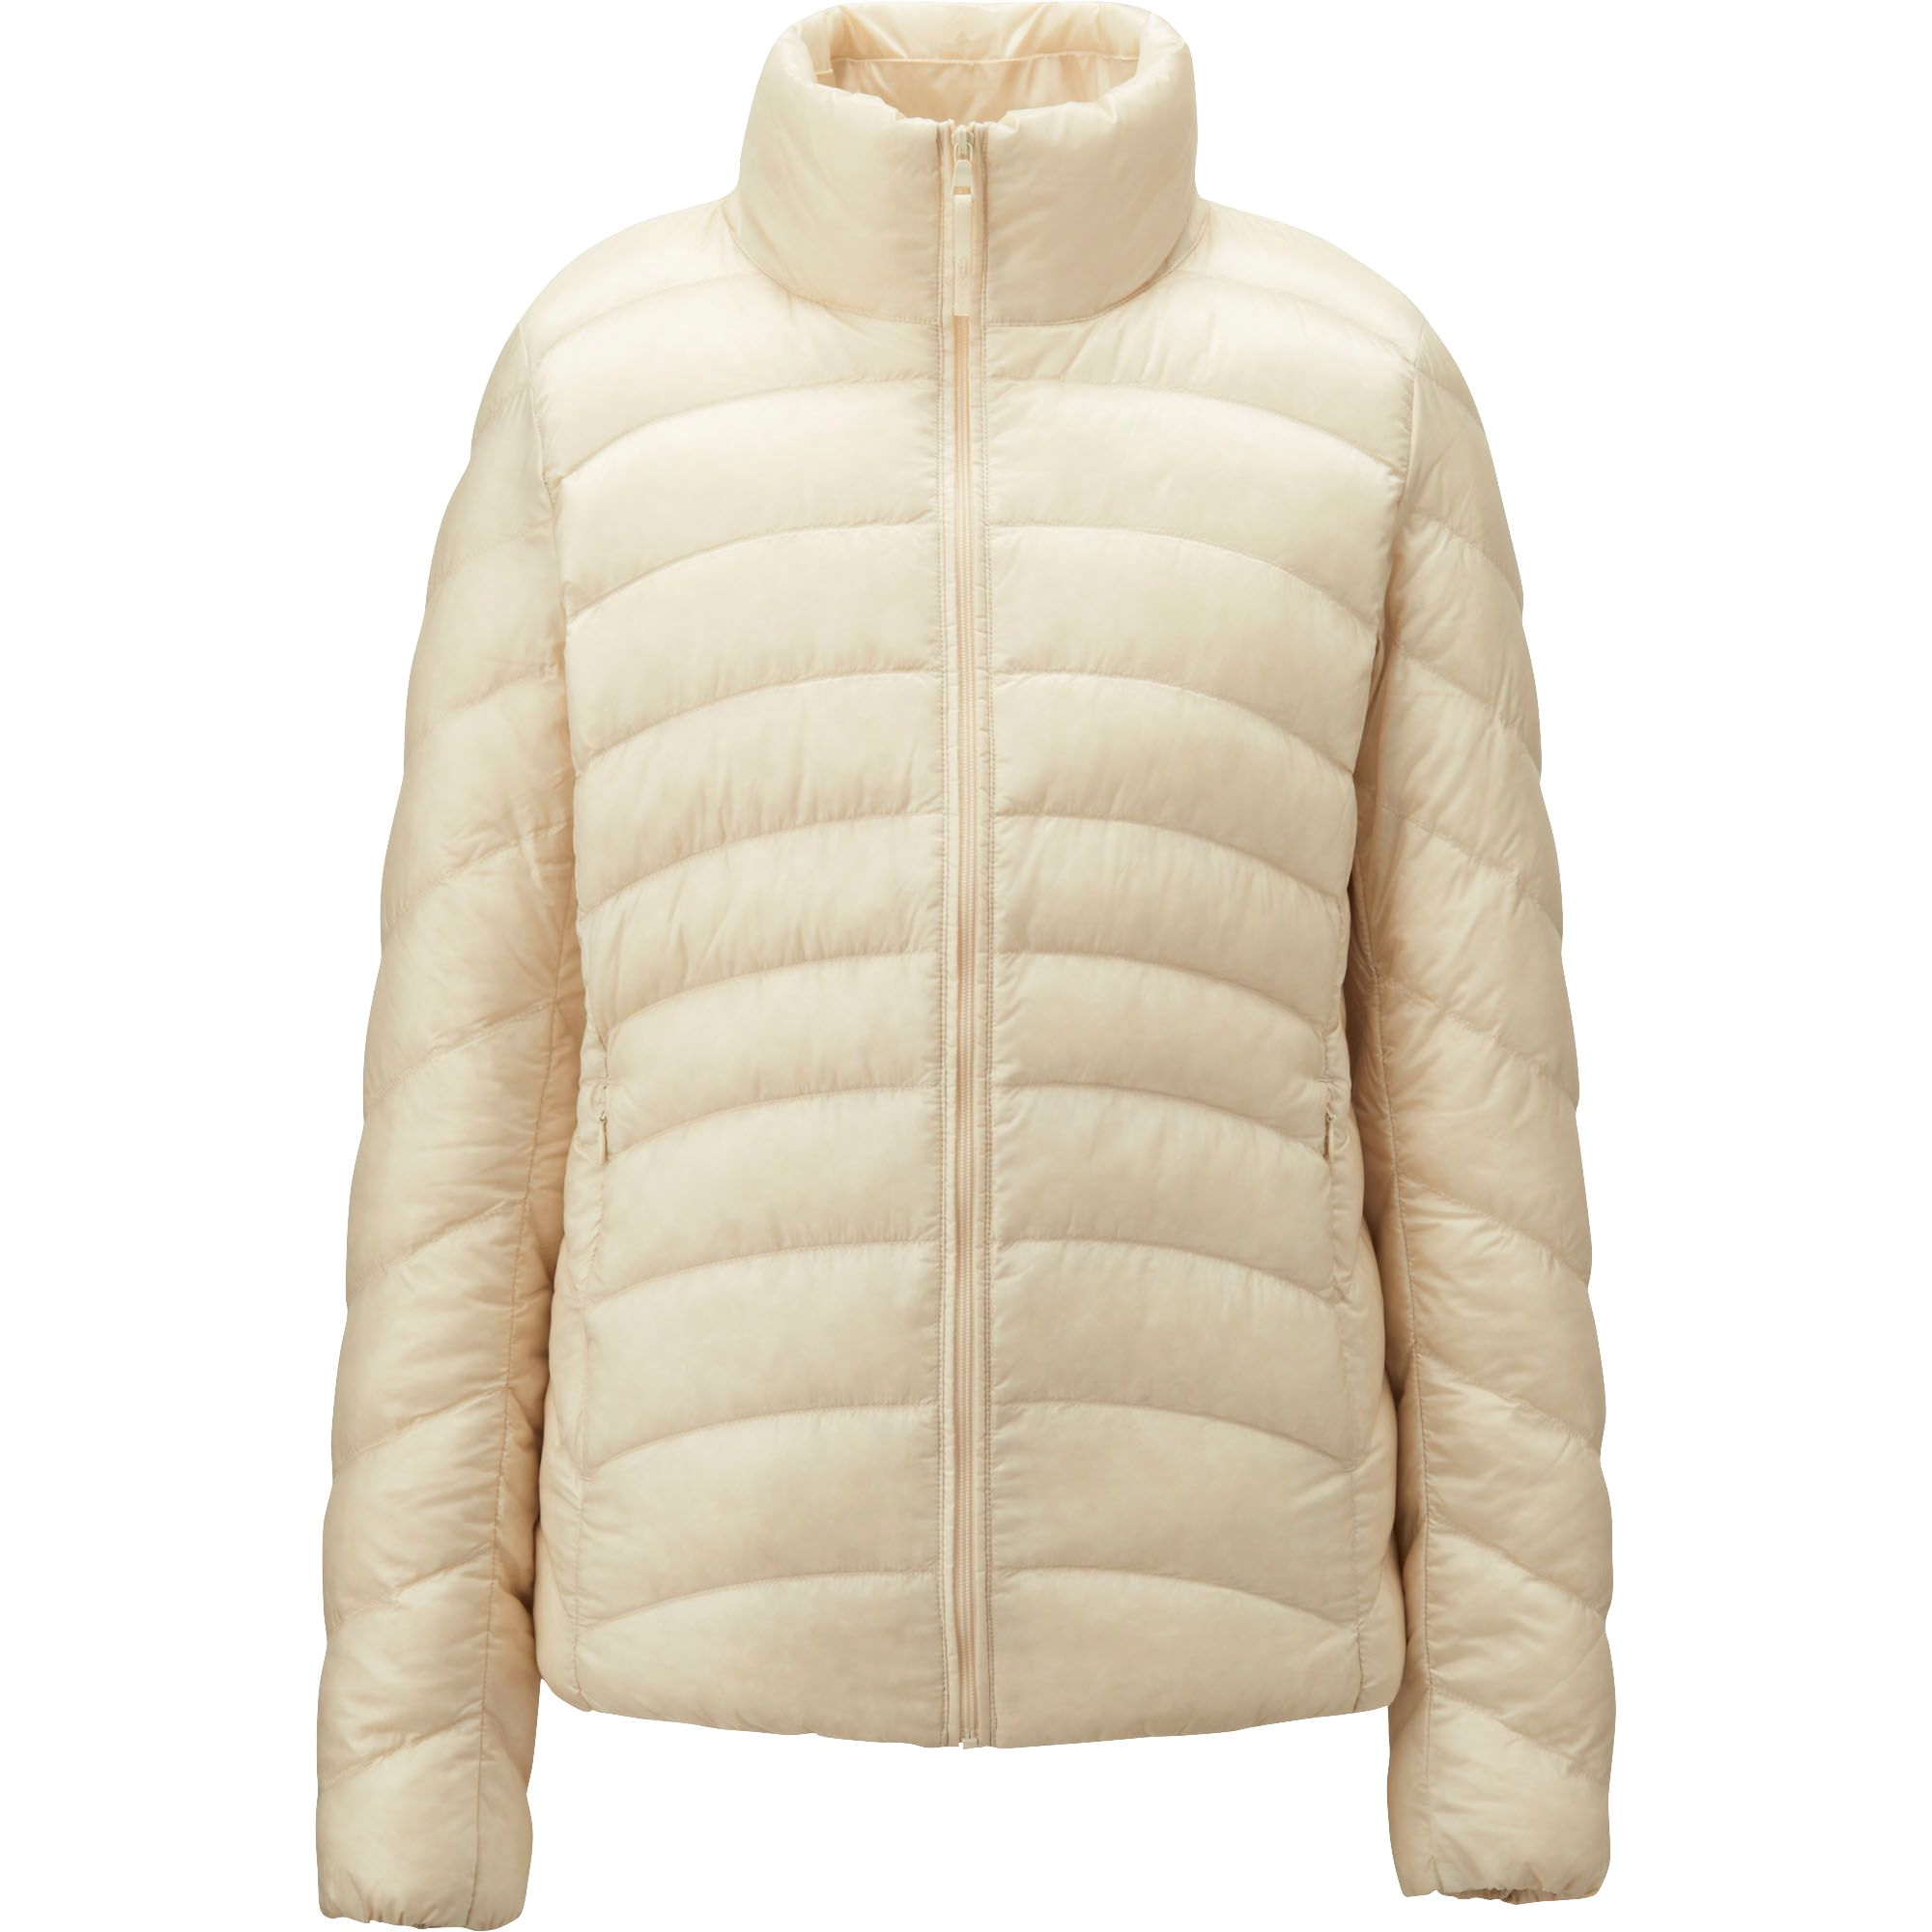 uniqlo ultra light down jacket in white off white. Black Bedroom Furniture Sets. Home Design Ideas